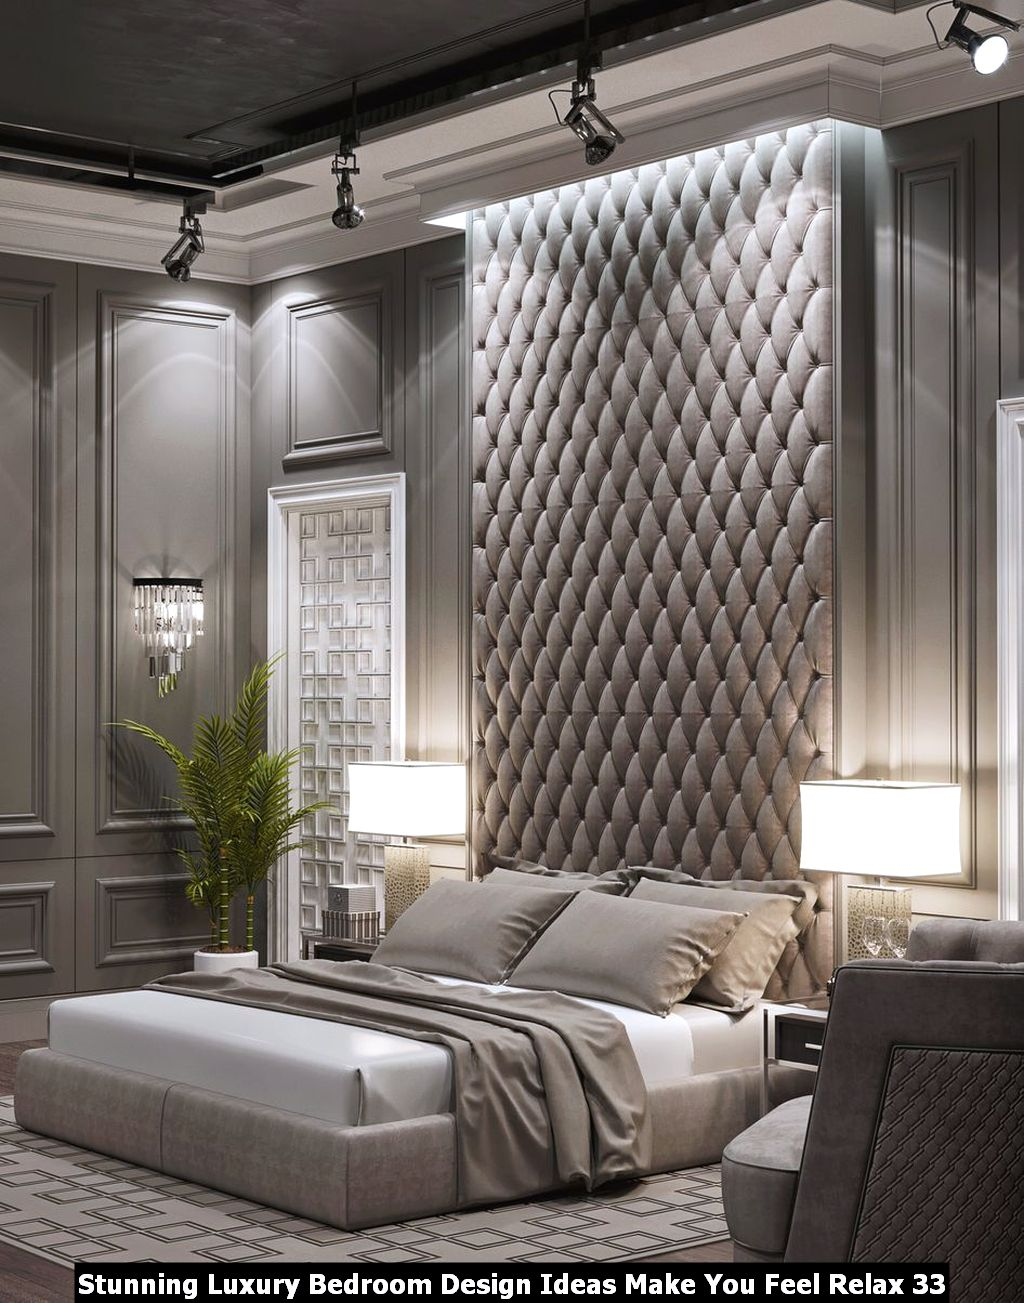 Stunning Luxury Bedroom Design Ideas Make You Feel Relax 33